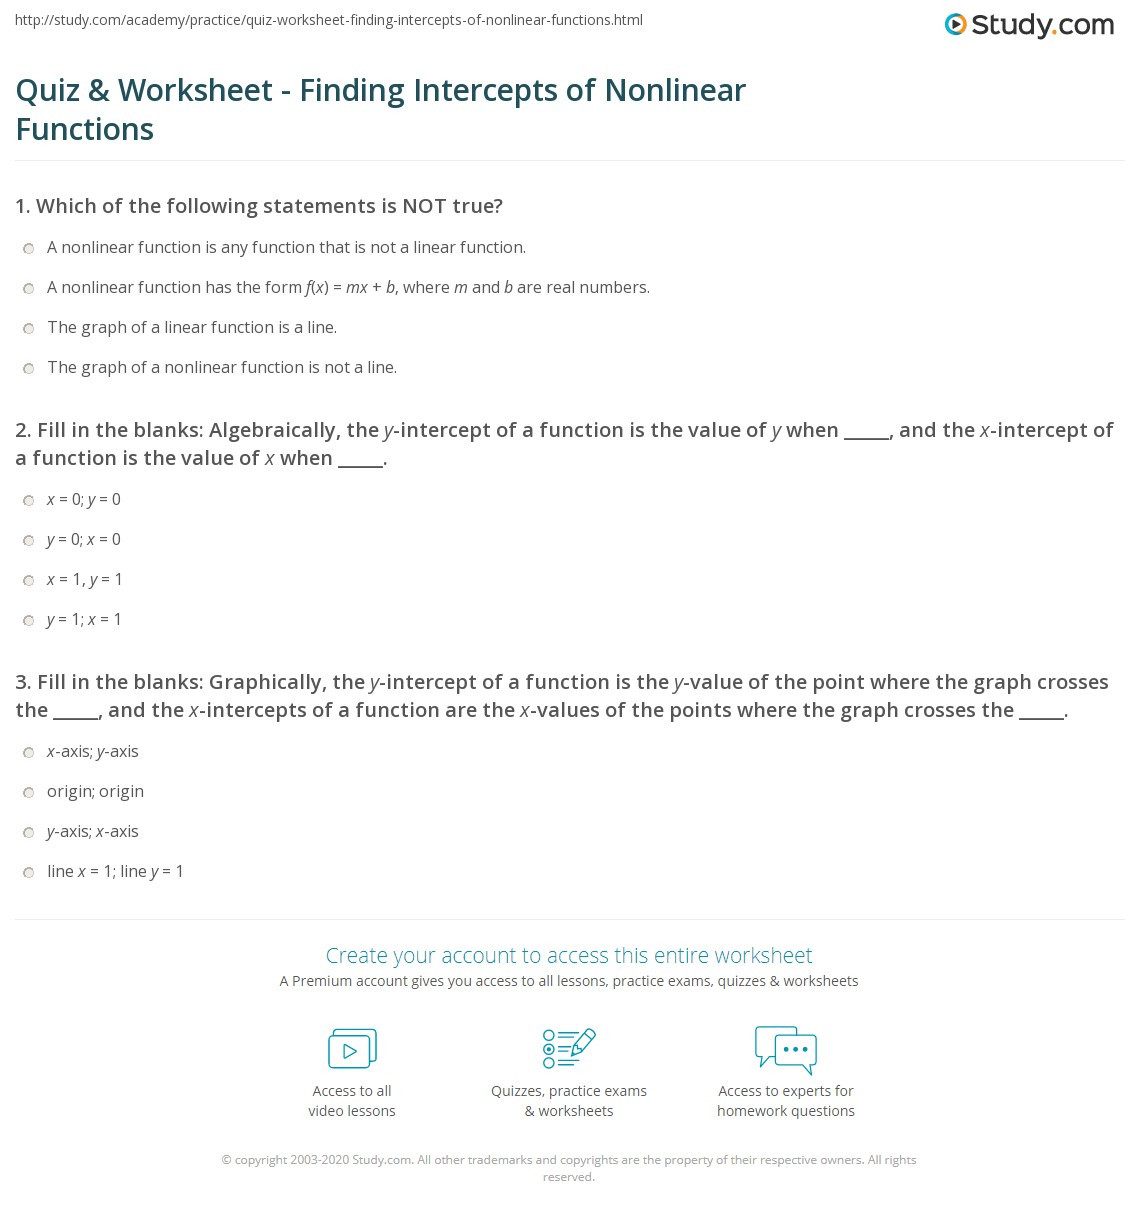 Linear and Nonlinear Functions Worksheet Quiz & Worksheet Finding Intercepts Of Nonlinear Functions